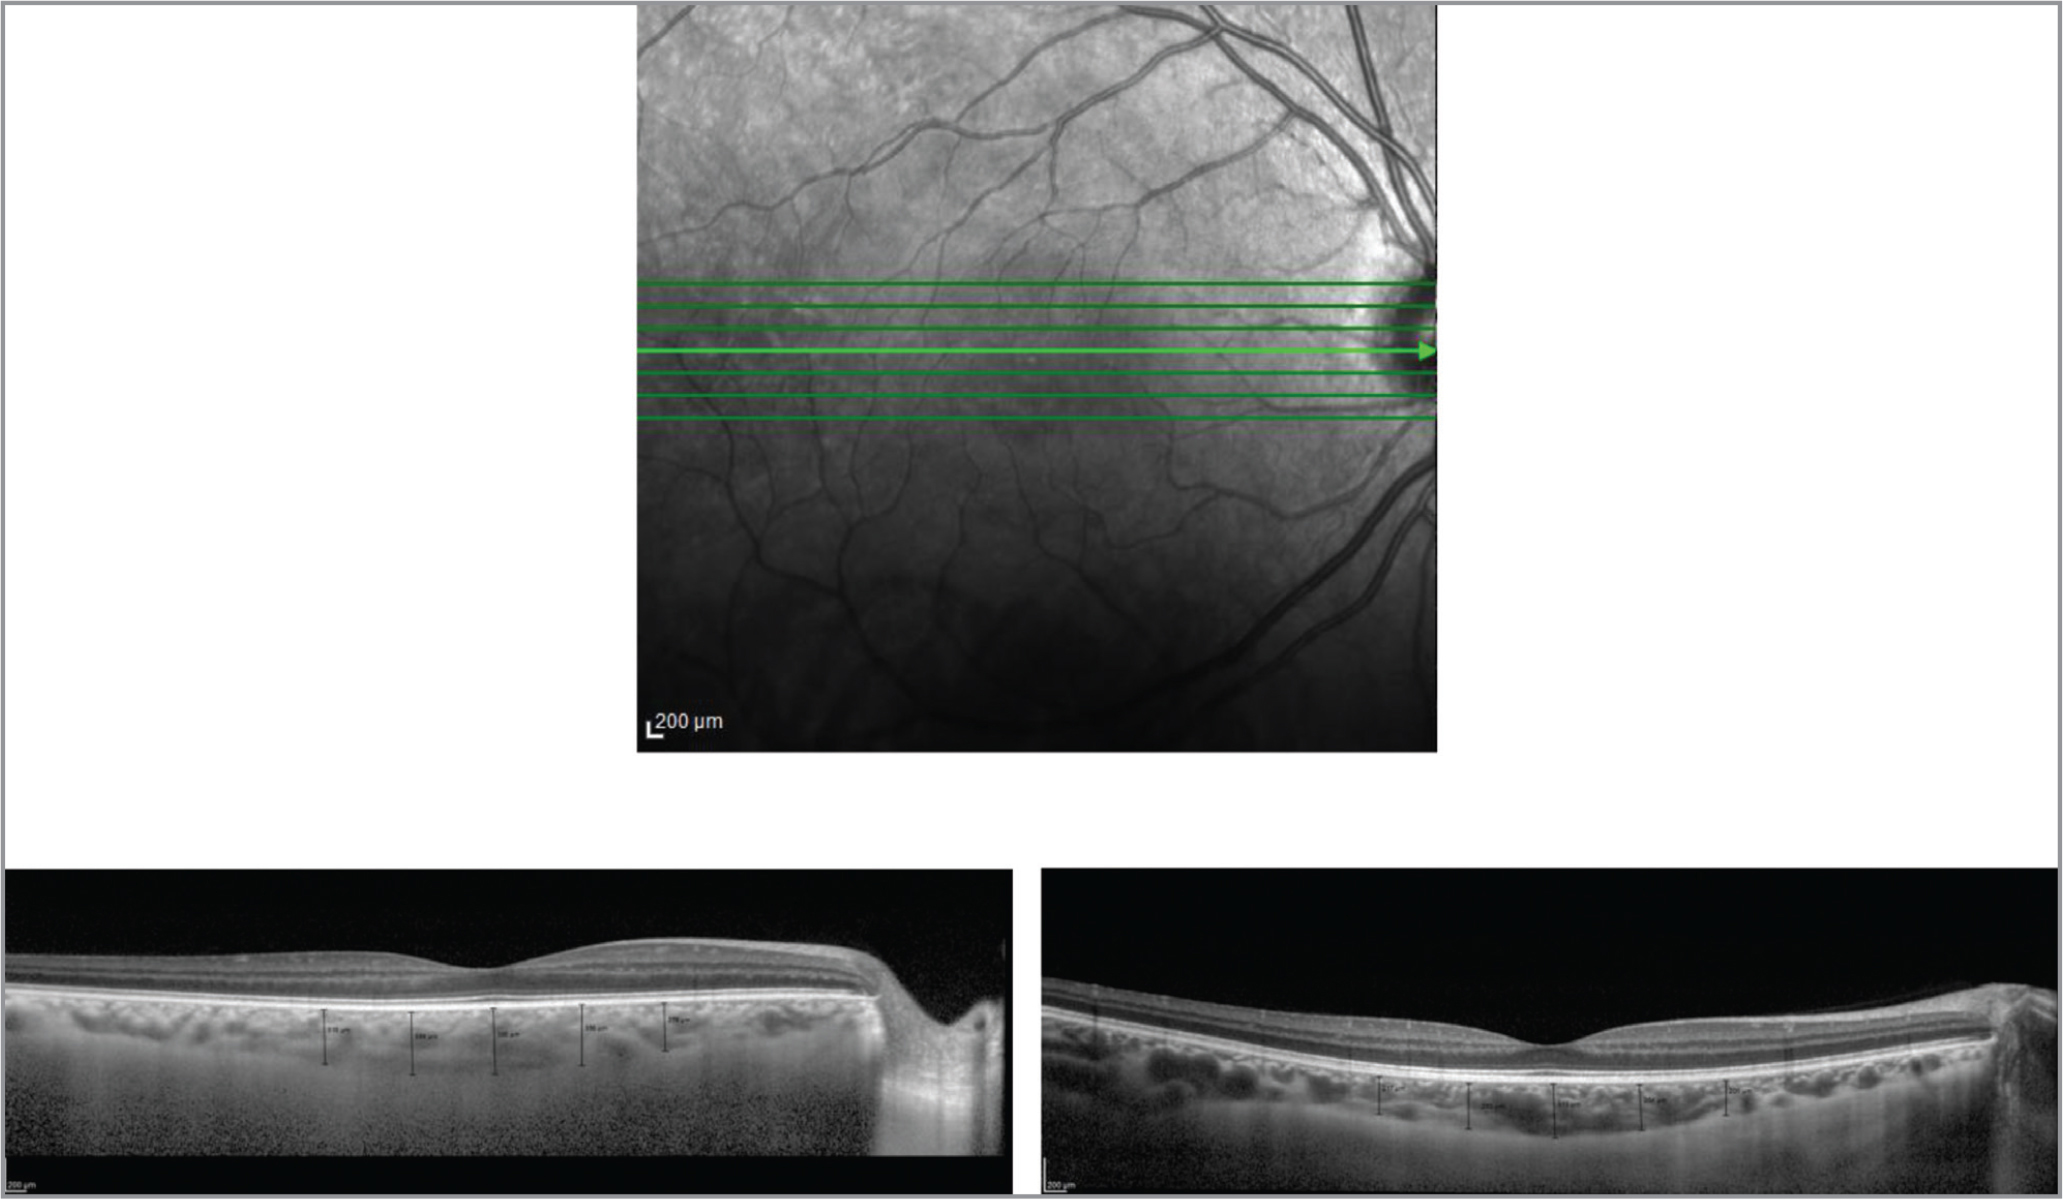 Optical coherence tomography (OCT) scans showing the macular choroidal thicknesses of a patient with keratoconus, and a control subject. (Top) Scanning laser ophthalmoscopy fundus image obtained using Spectralis (Heidelberg Engineering, Heidelberg, Germany) for eye tracking. Seven green lines indicate the location and direction of the scan pattern. The marked green line passed directly through the center of the fovea. (Bottom left) An OCT image of a 21-year-old patient with keratoconus obtained using Spectralis. Image averaging performed with the aid of eye tracking and enhanced depth imaging are used for choroidal visualization. Black lines indicate choroidal thickness measurements at the fovea, 0.75 mm and 1.5 mm temporal to the fovea, and 0.75 mm and 1.5 mm nasal to the fovea. (Bottom right) An OCT image of an 18-year-old control subject obtained using Spectralis.